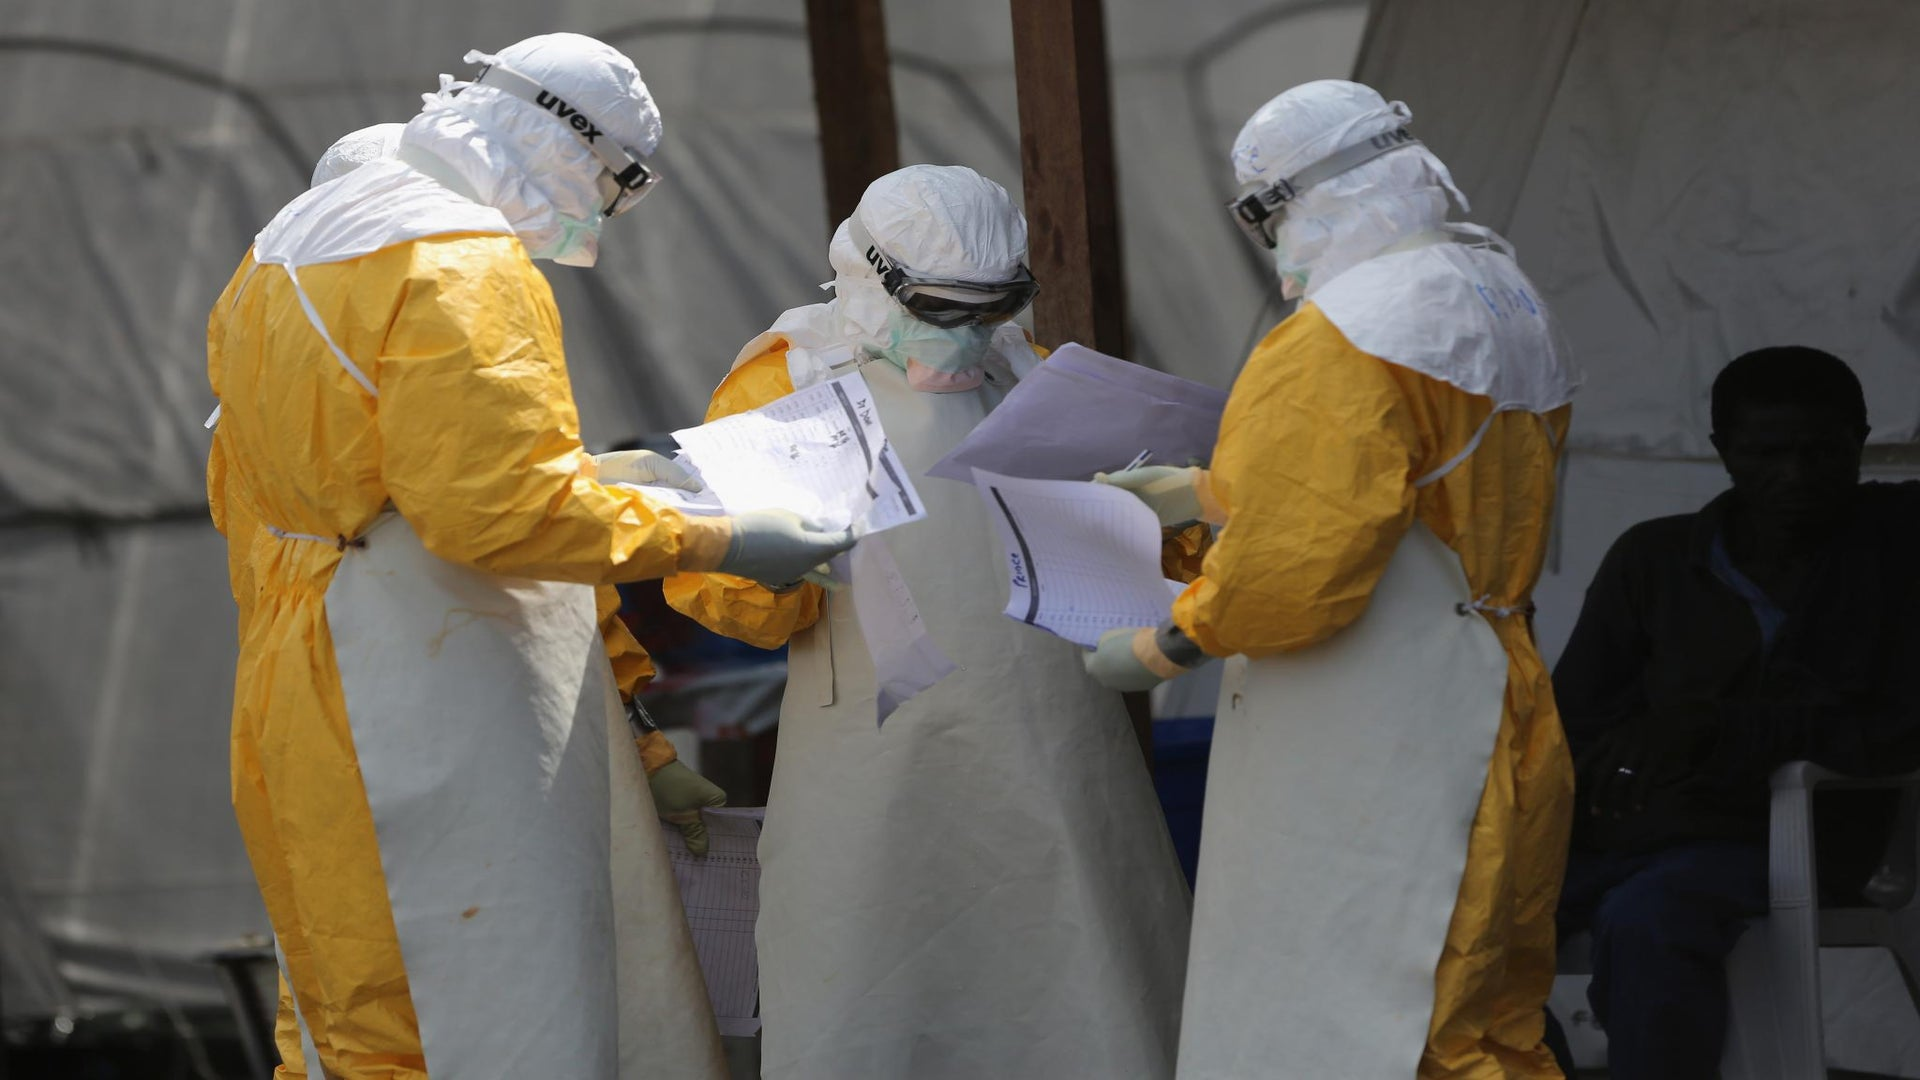 ESSENCE Poll: What Would You Like to See in Media Coverage of Ebola?